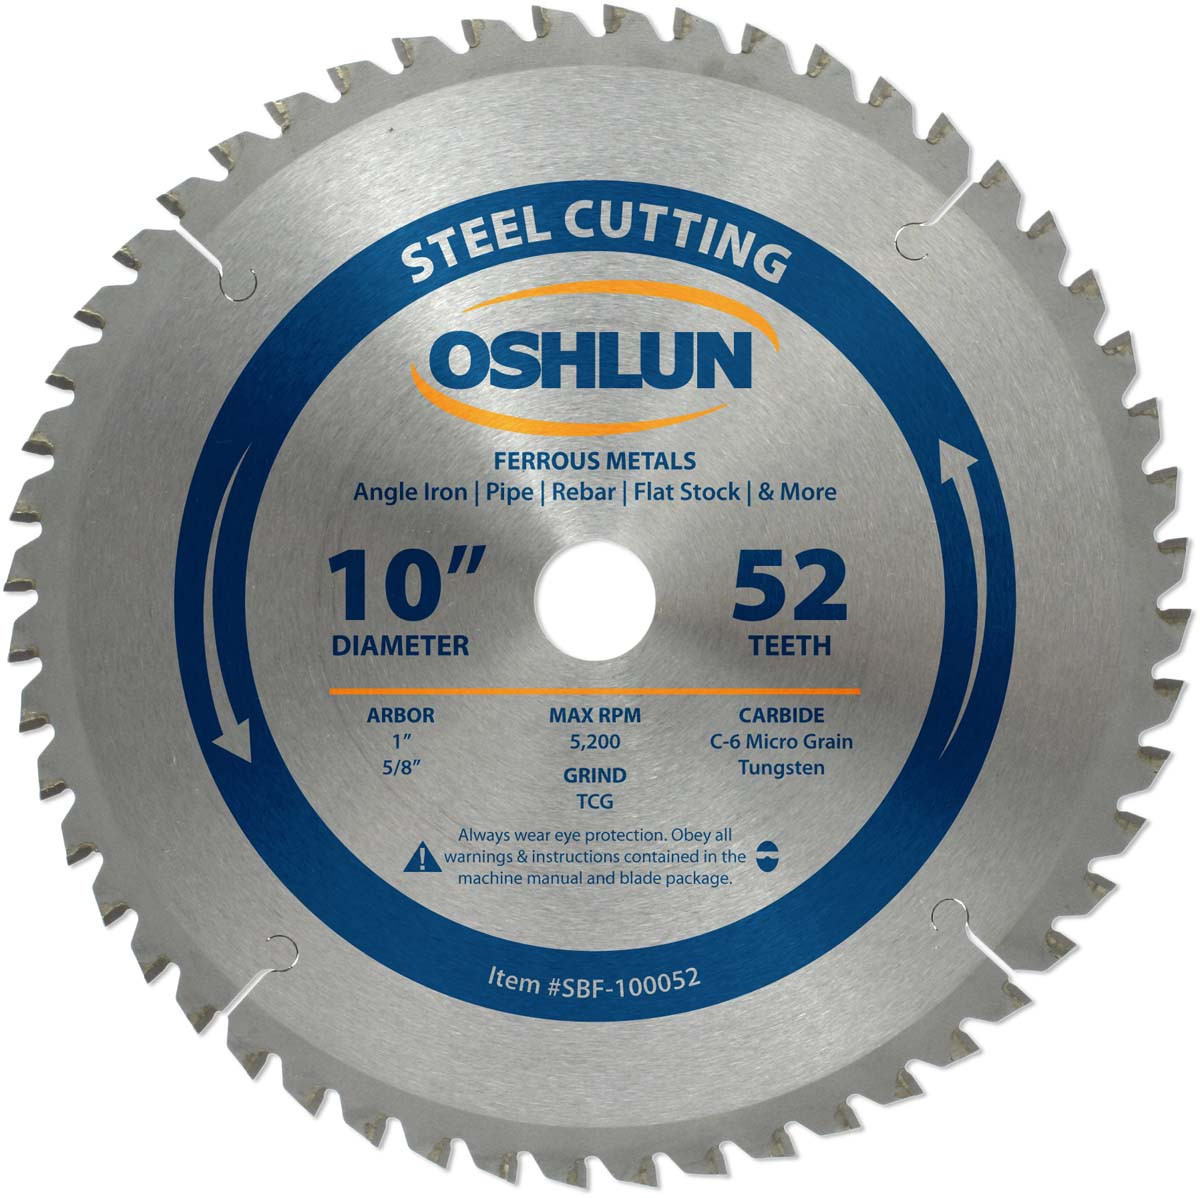 Steel cutting circular saw ferrous metal saw blades keyboard keysfo Choice Image